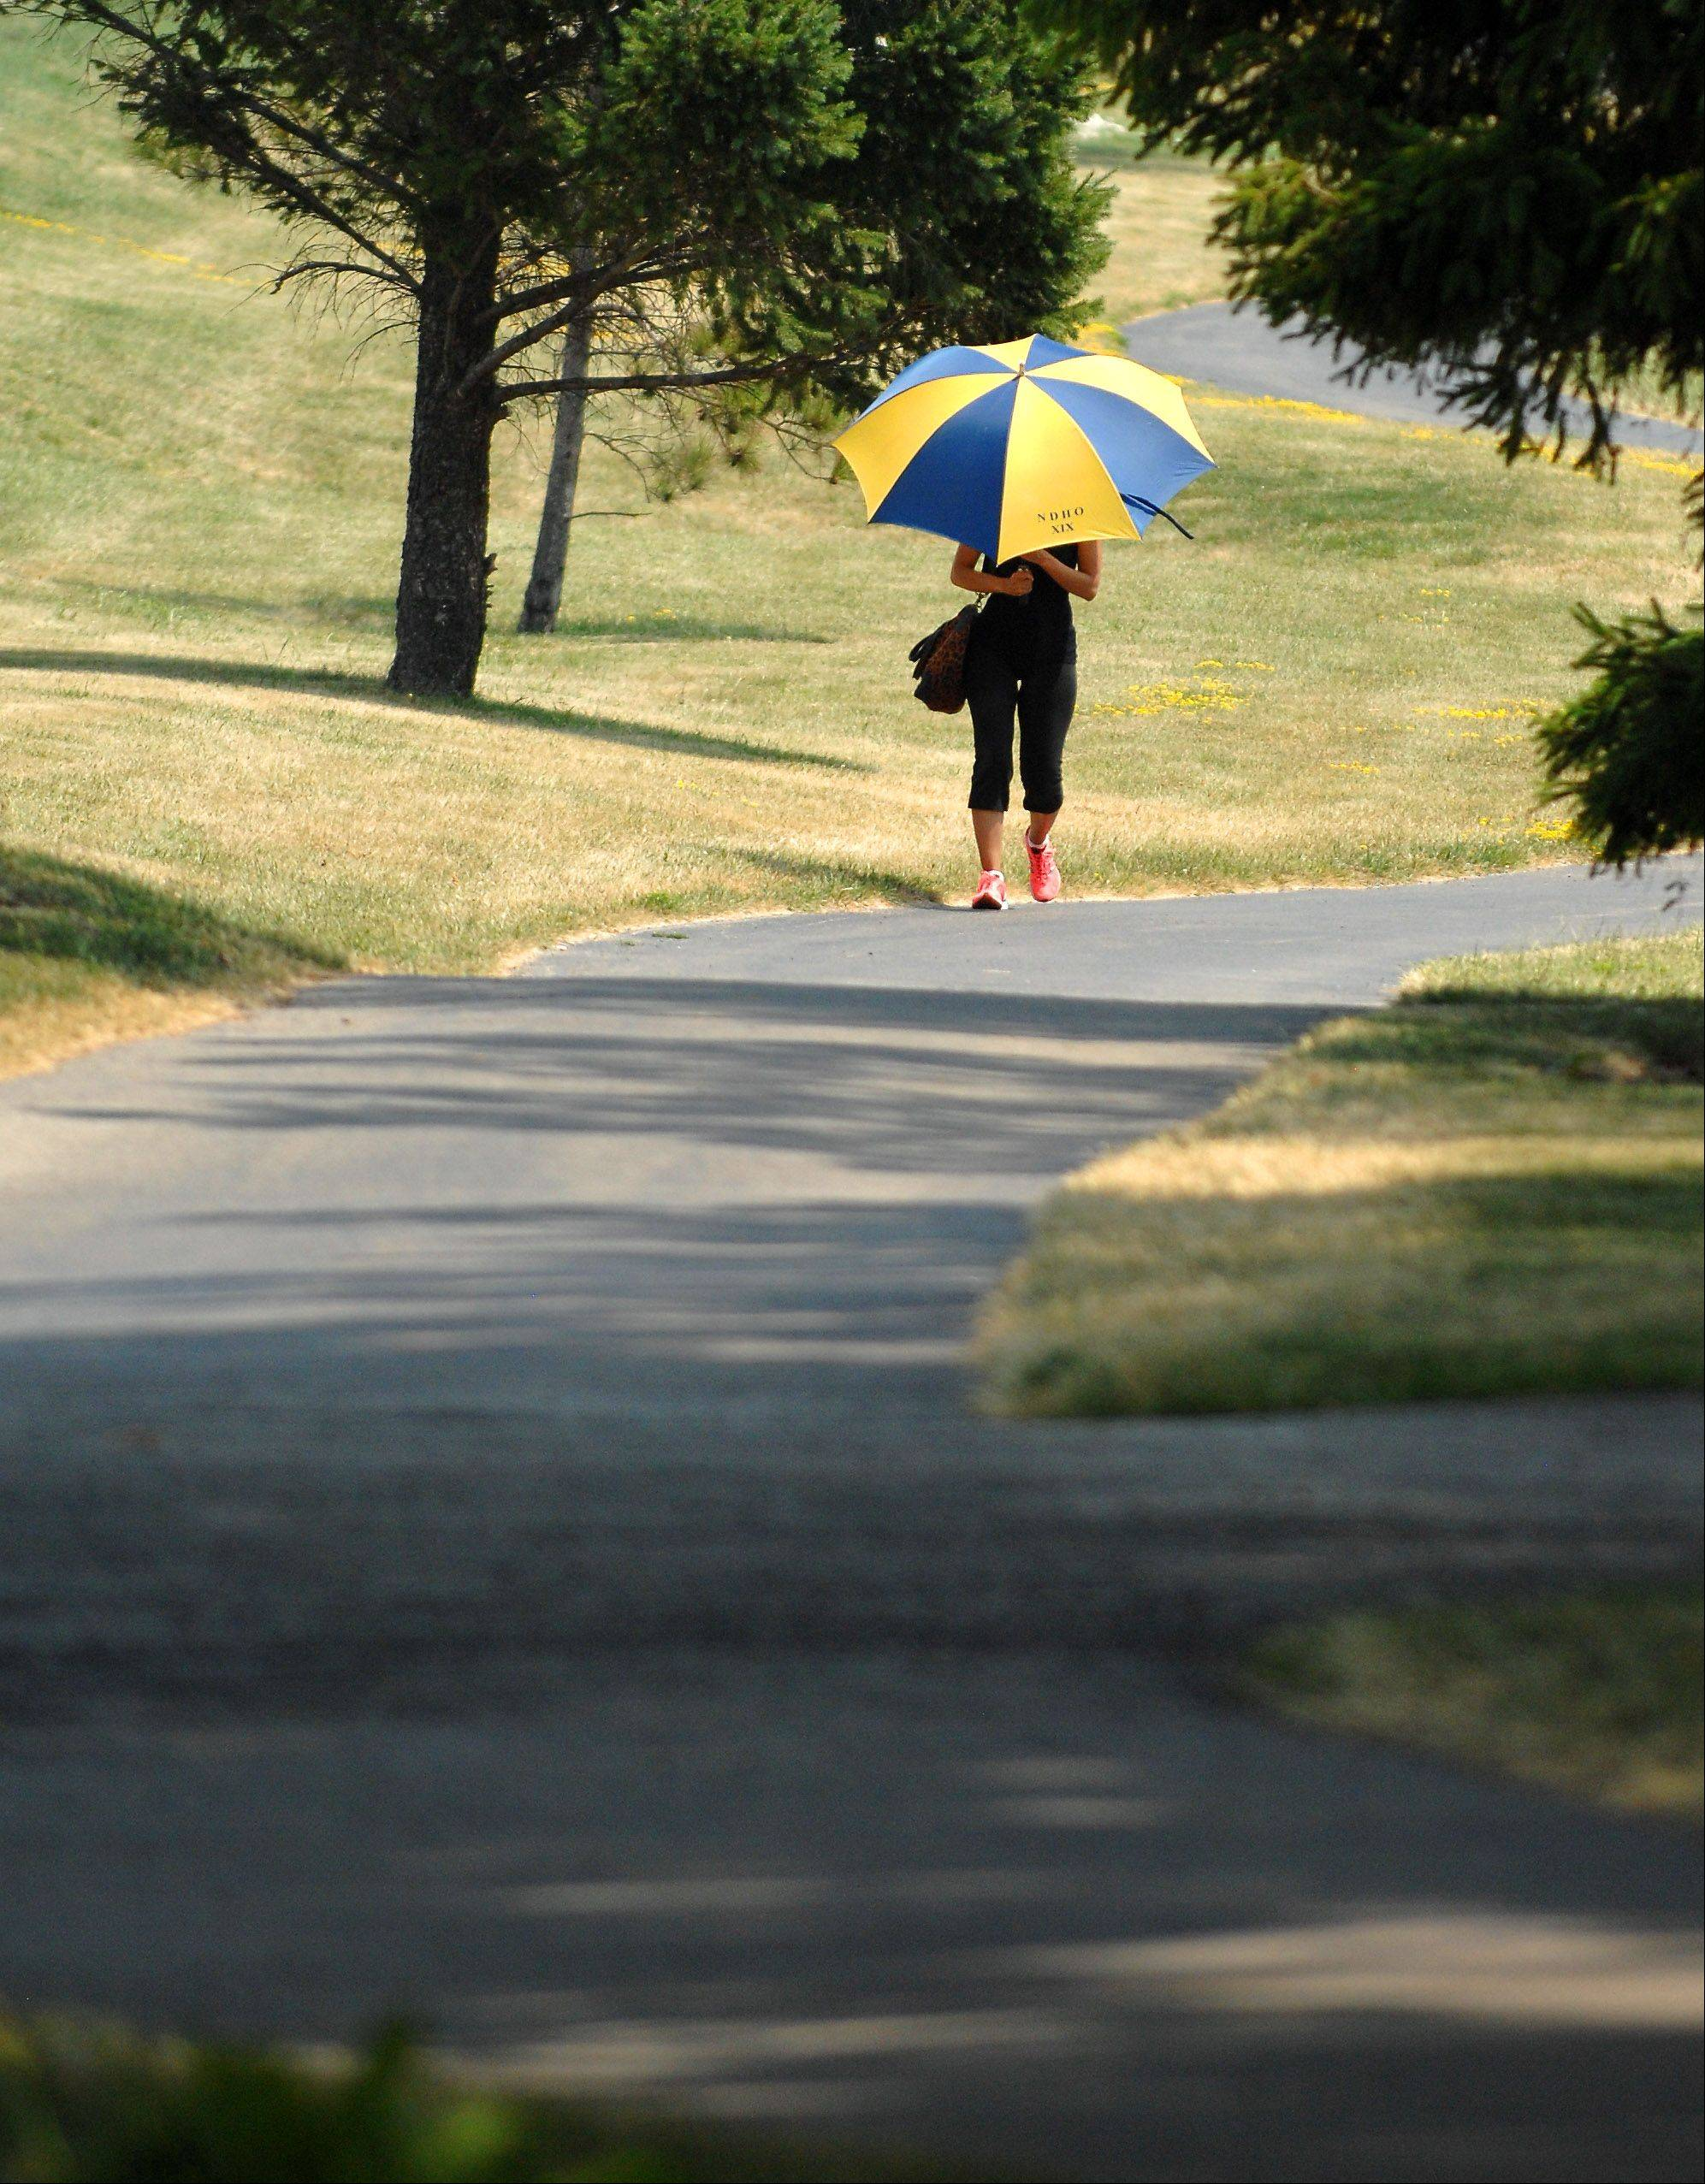 Charron Davis uses an umbrella to shield herself from the hot sun Thursday as she walks near Peck Farm Park in Geneva. Davis said she lives in Chicago but stays in Geneva for the summer.